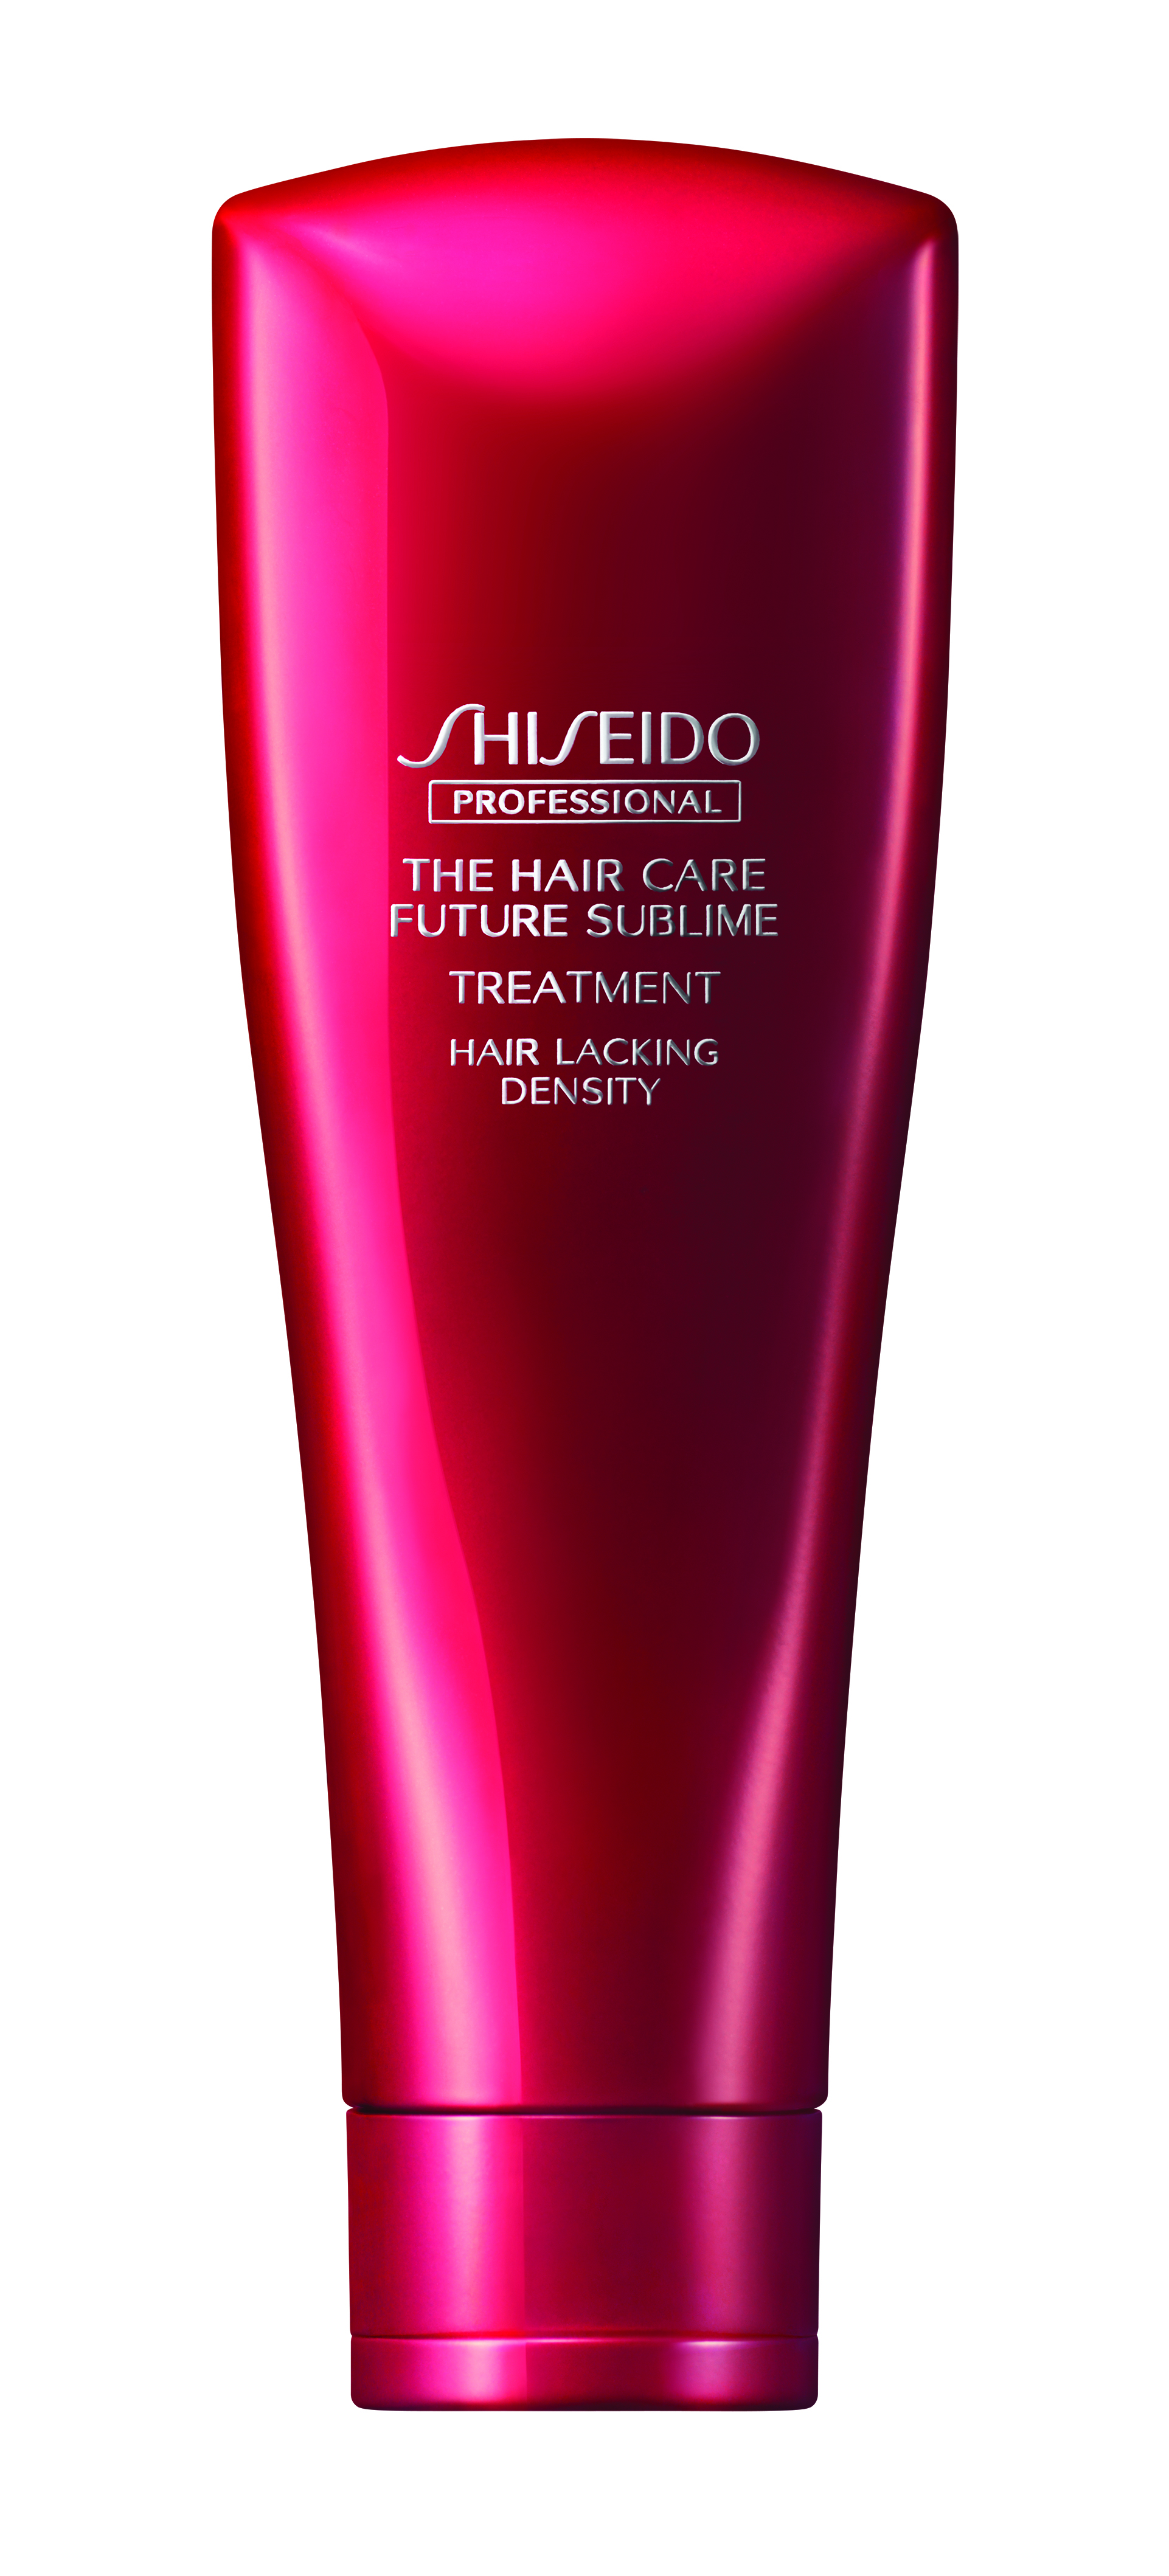 Shiseido Professional's Future Sublime Hair Care Range ...